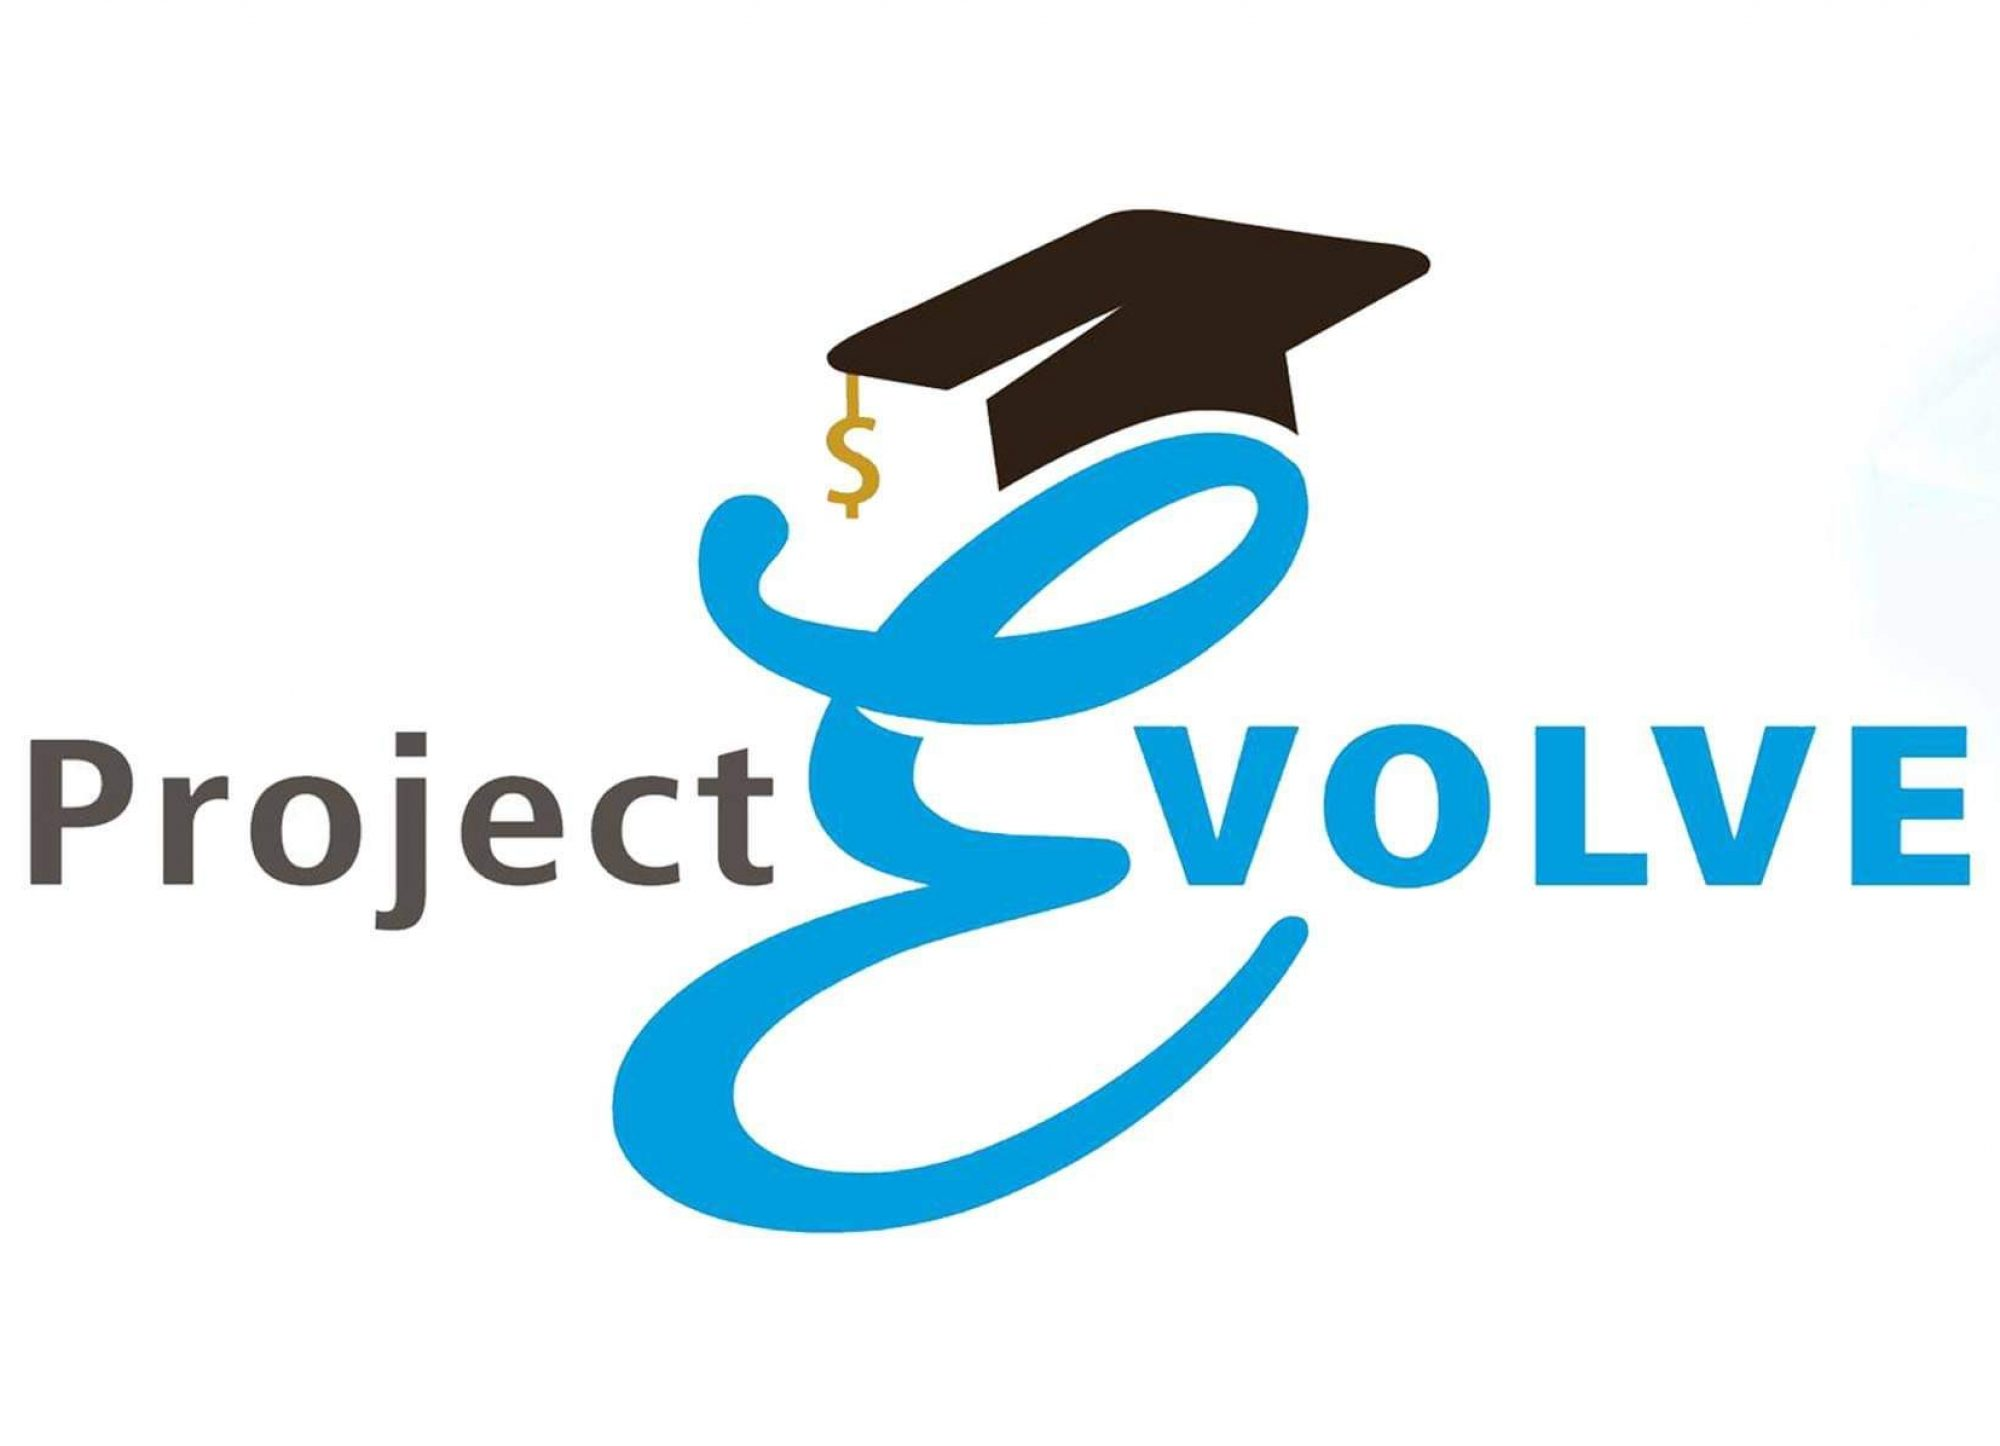 Project Evolve - Financial Education